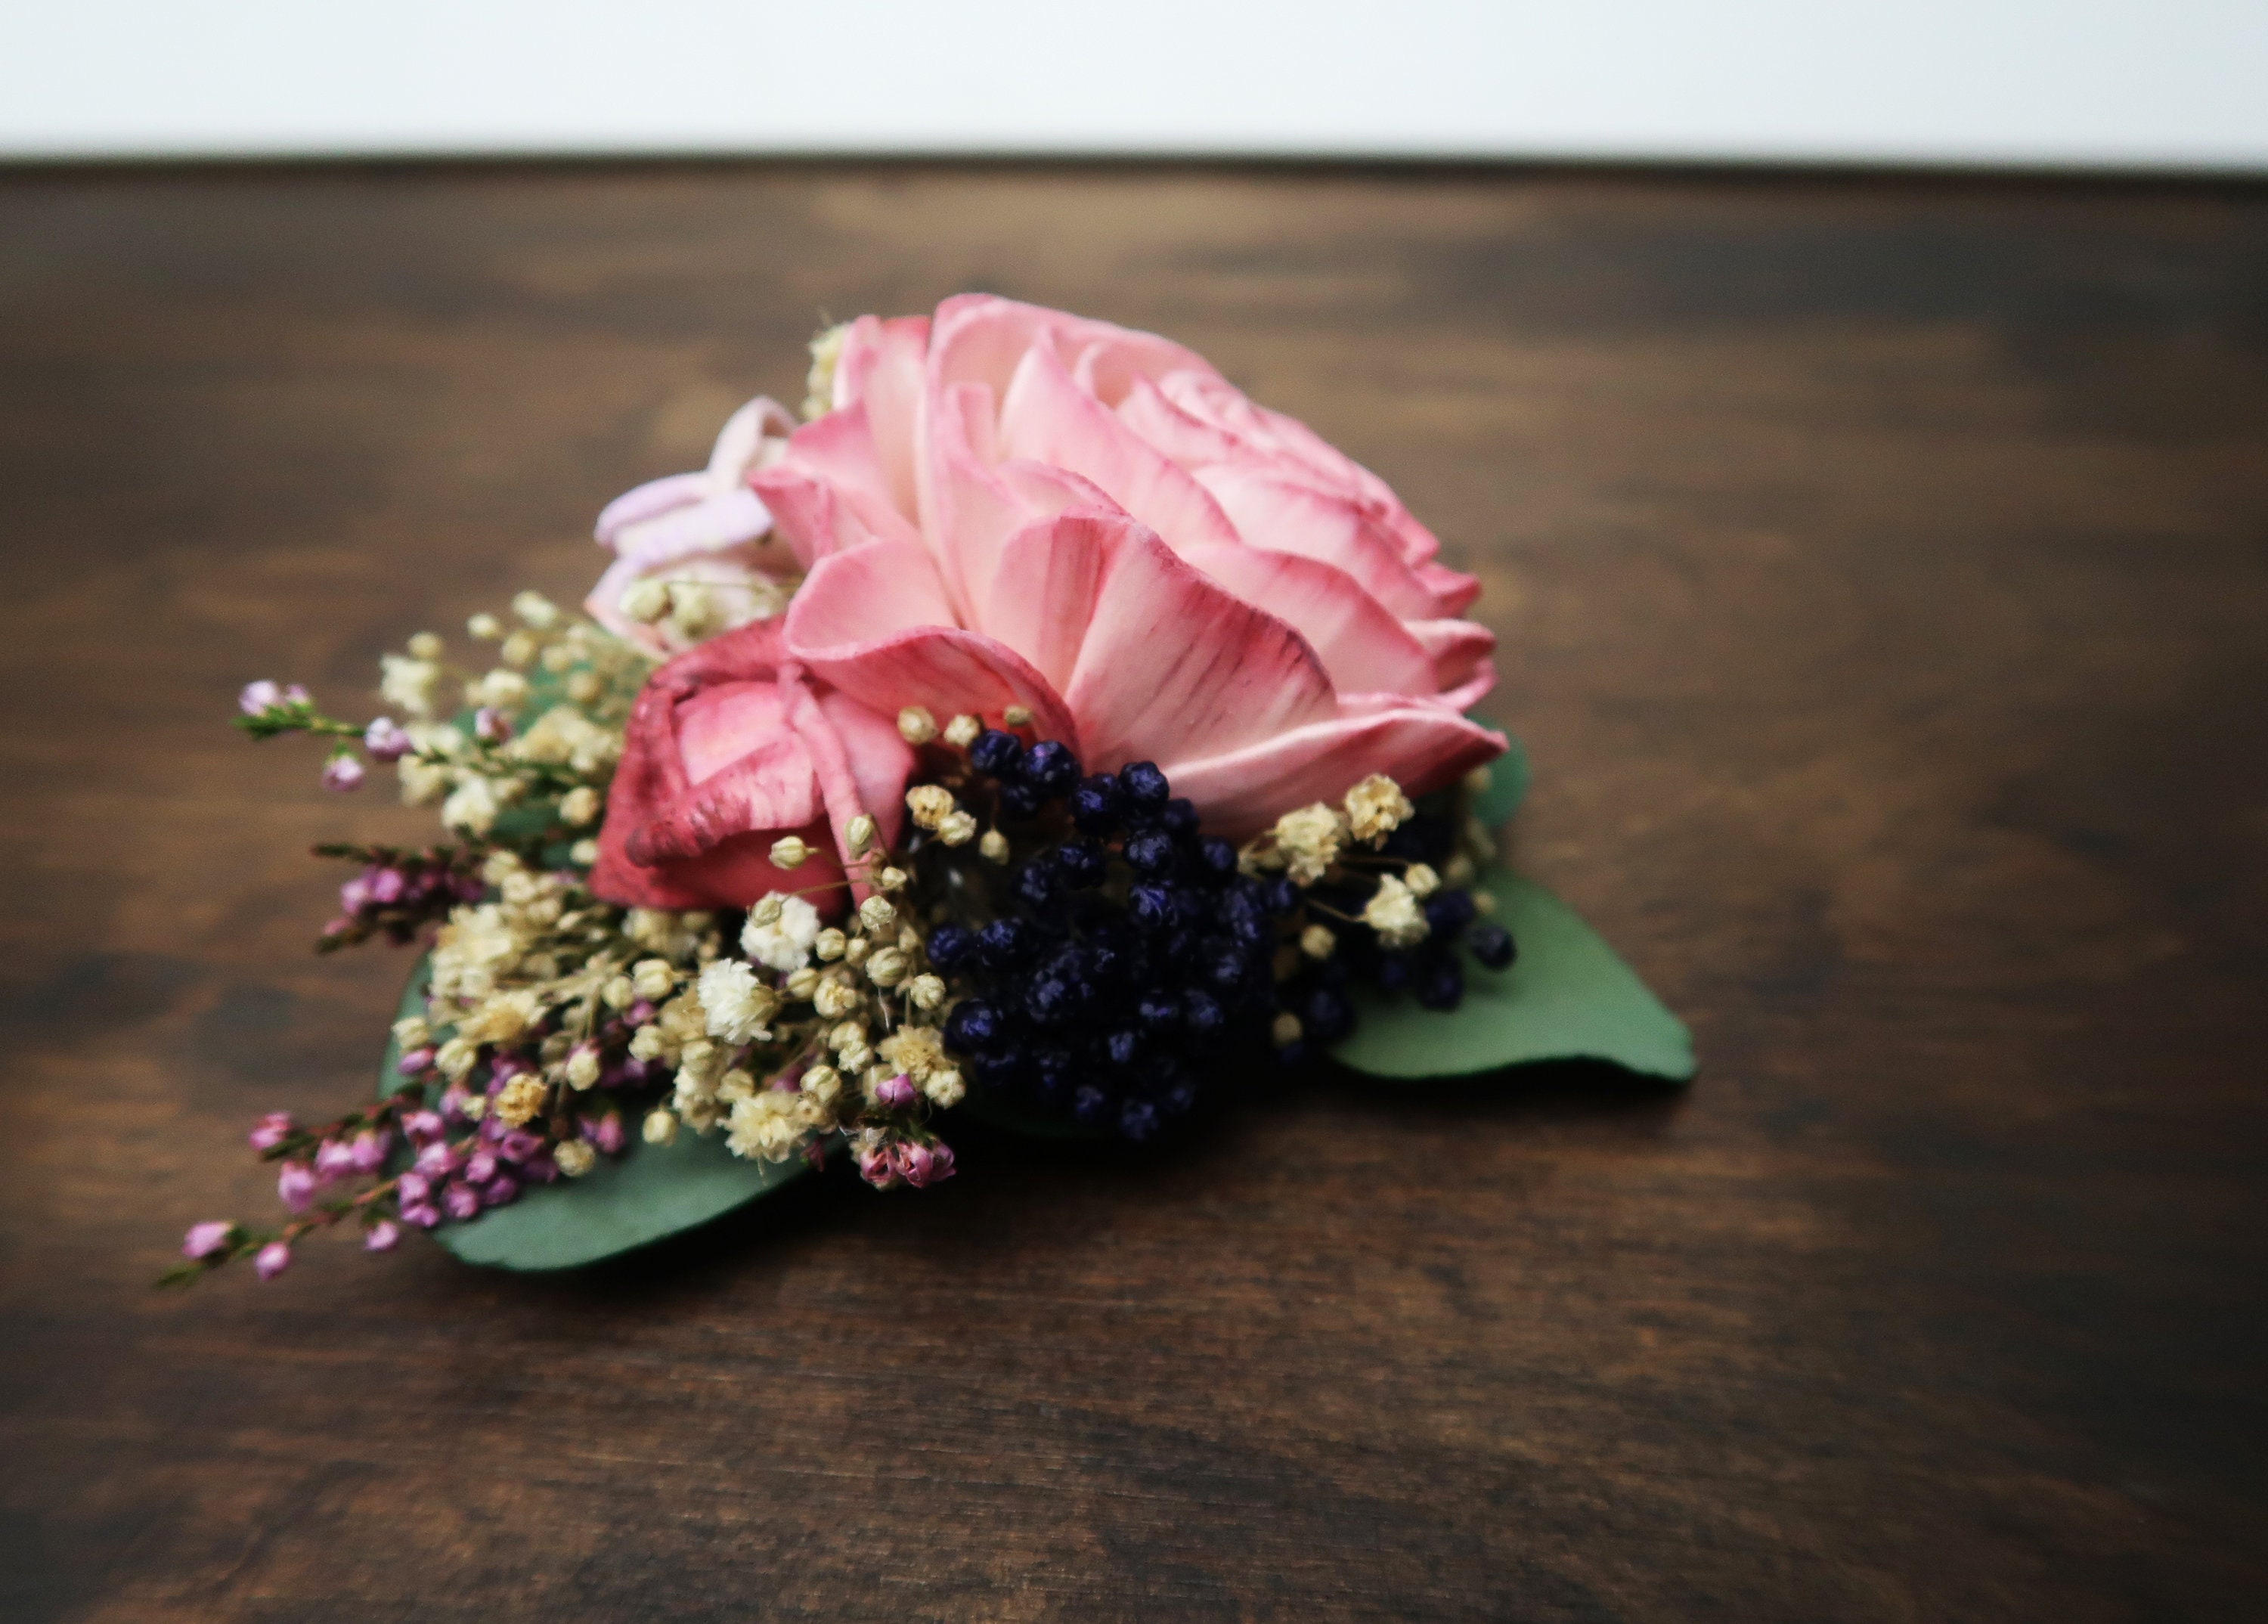 Floral brooch corsage pink sola rose preserved eucalyptus lavender floral brooch corsage pink sola rose preserved eucalyptus lavender blue rice flowers gypsophila mother of bride corsage vintage style mightylinksfo